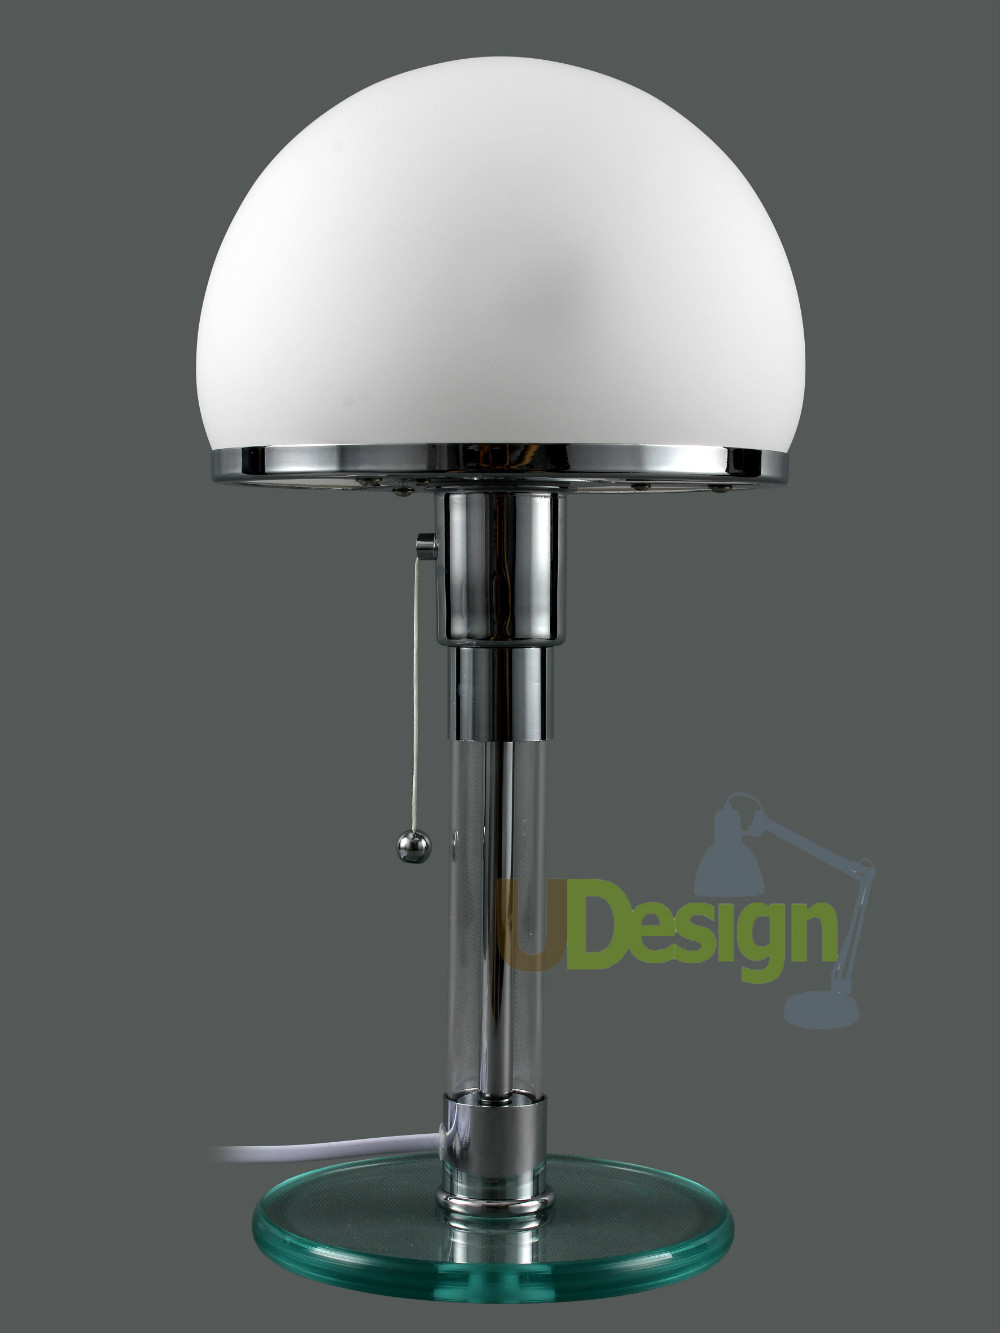 buy shipping cost can be negotiated replica wilhelm wagenfeld table lamp. Black Bedroom Furniture Sets. Home Design Ideas